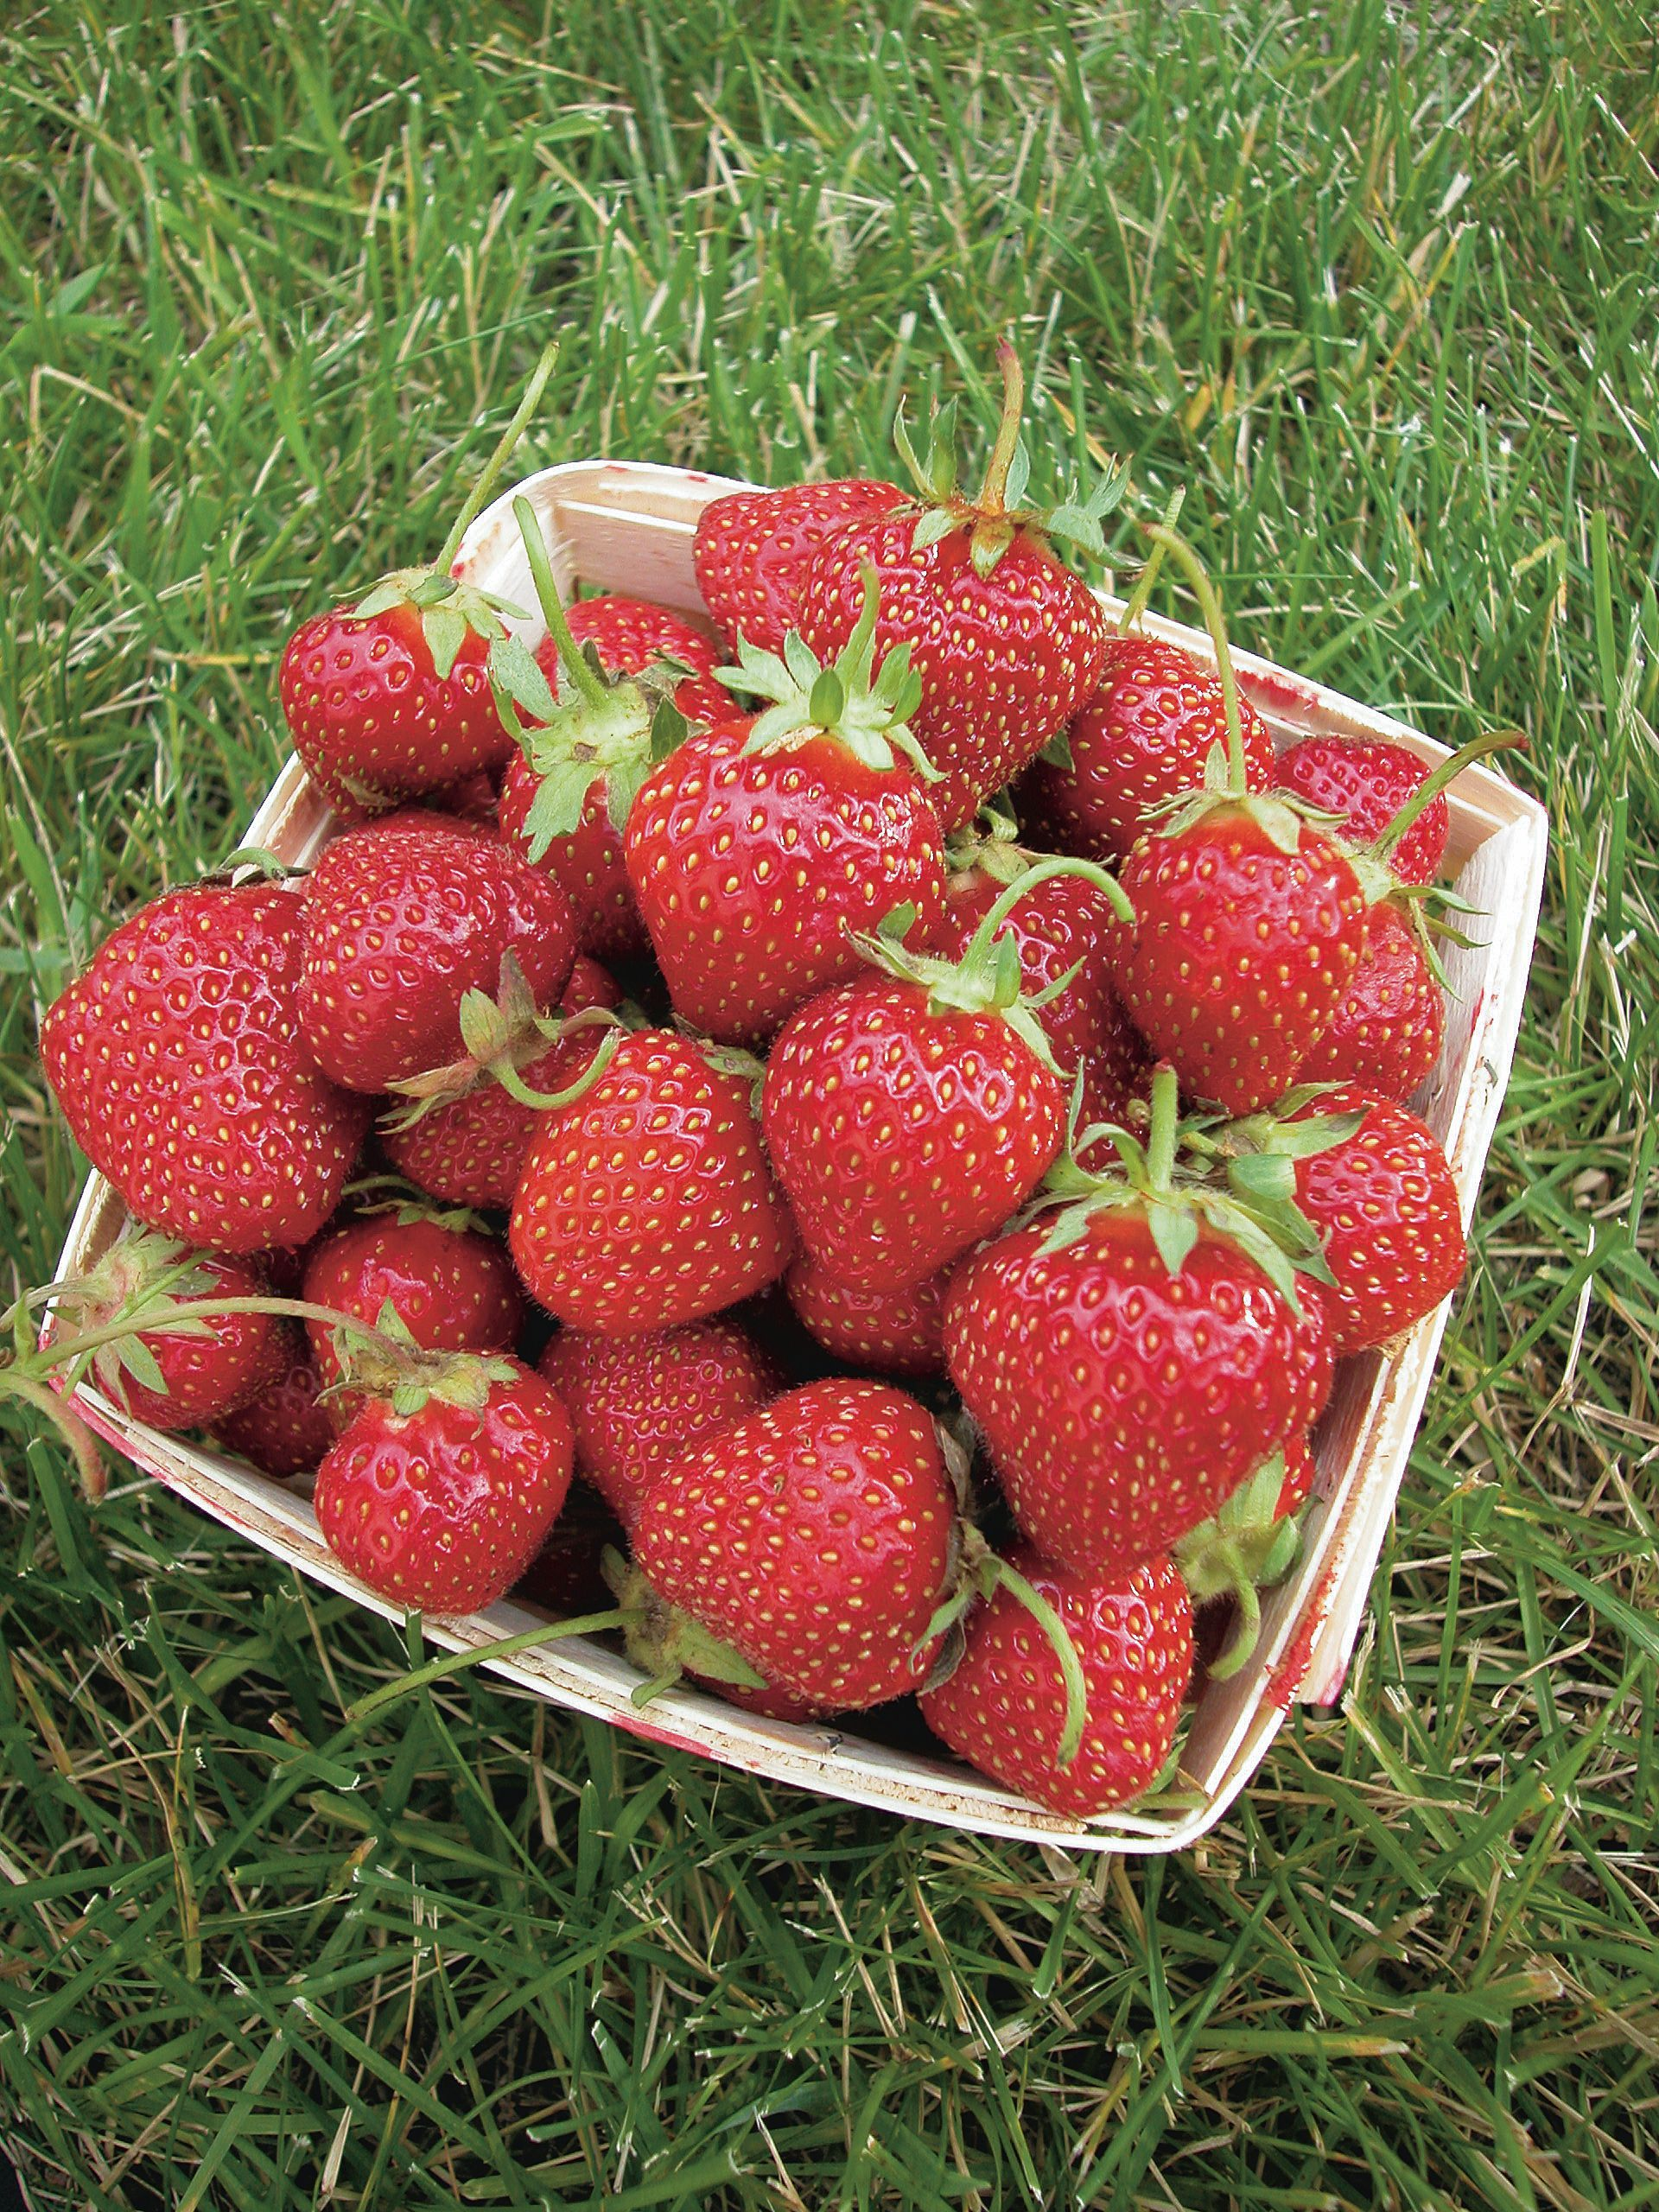 We have a sale going on right now on strawberry plants